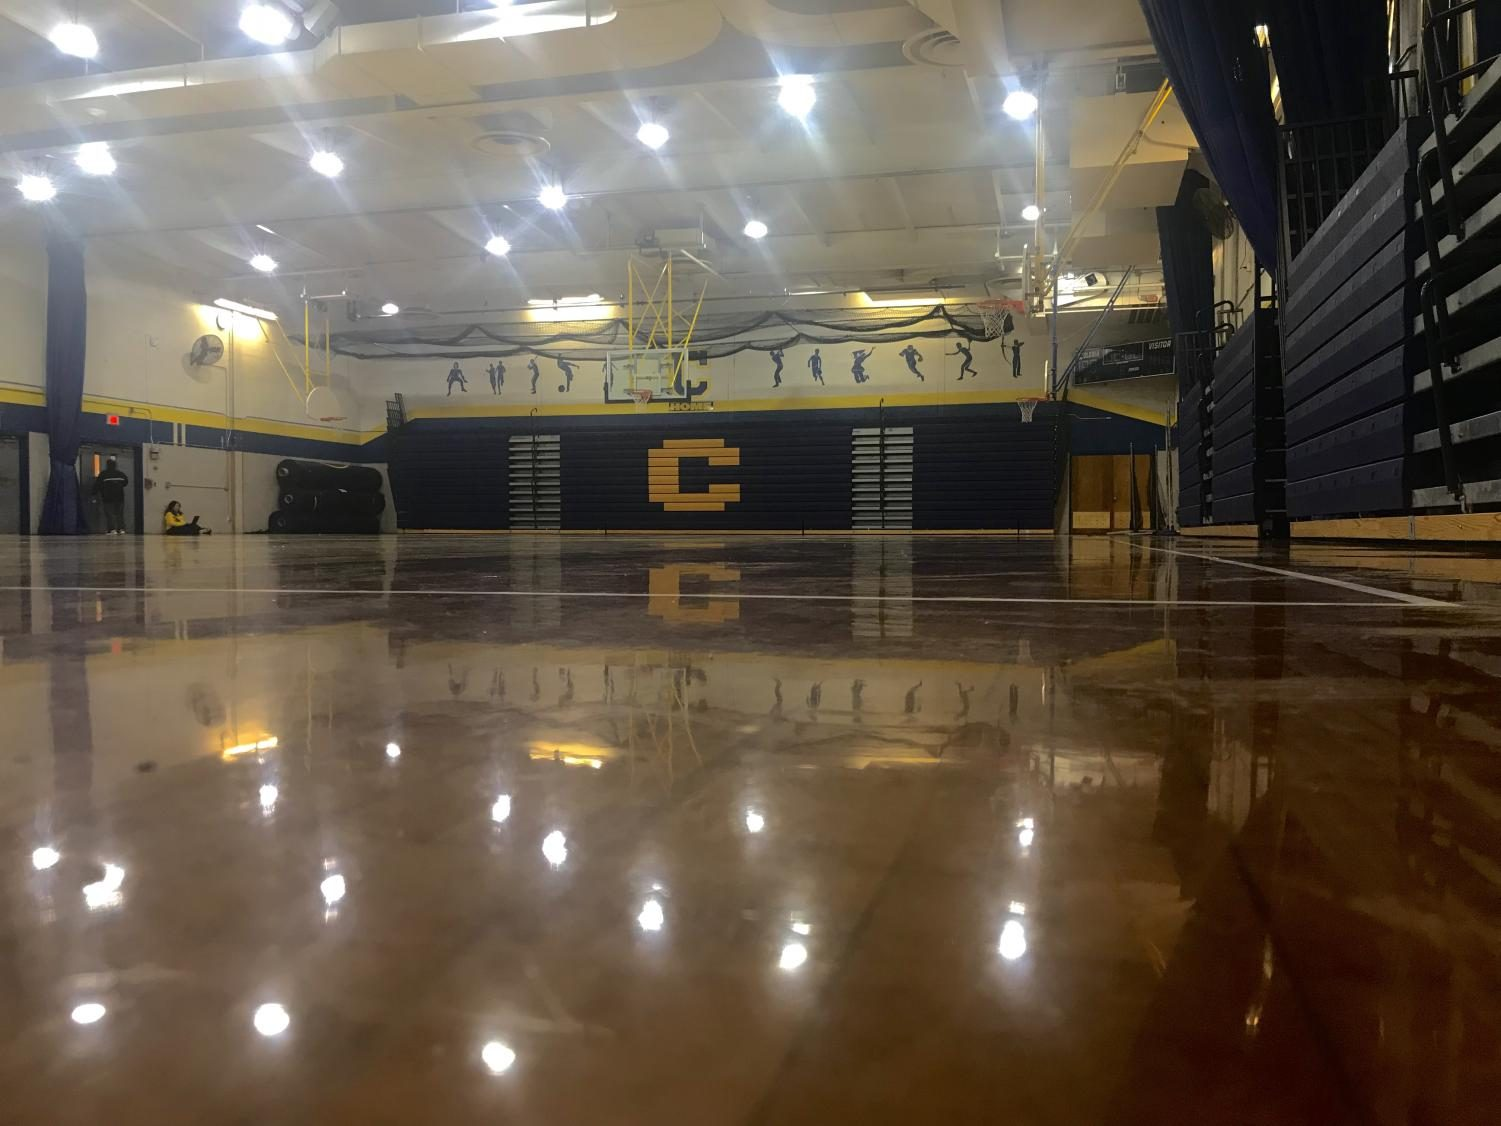 Colonia High Schools gym looking bright and shiny, perfect for kids who are looking to wake up a little by exercising!